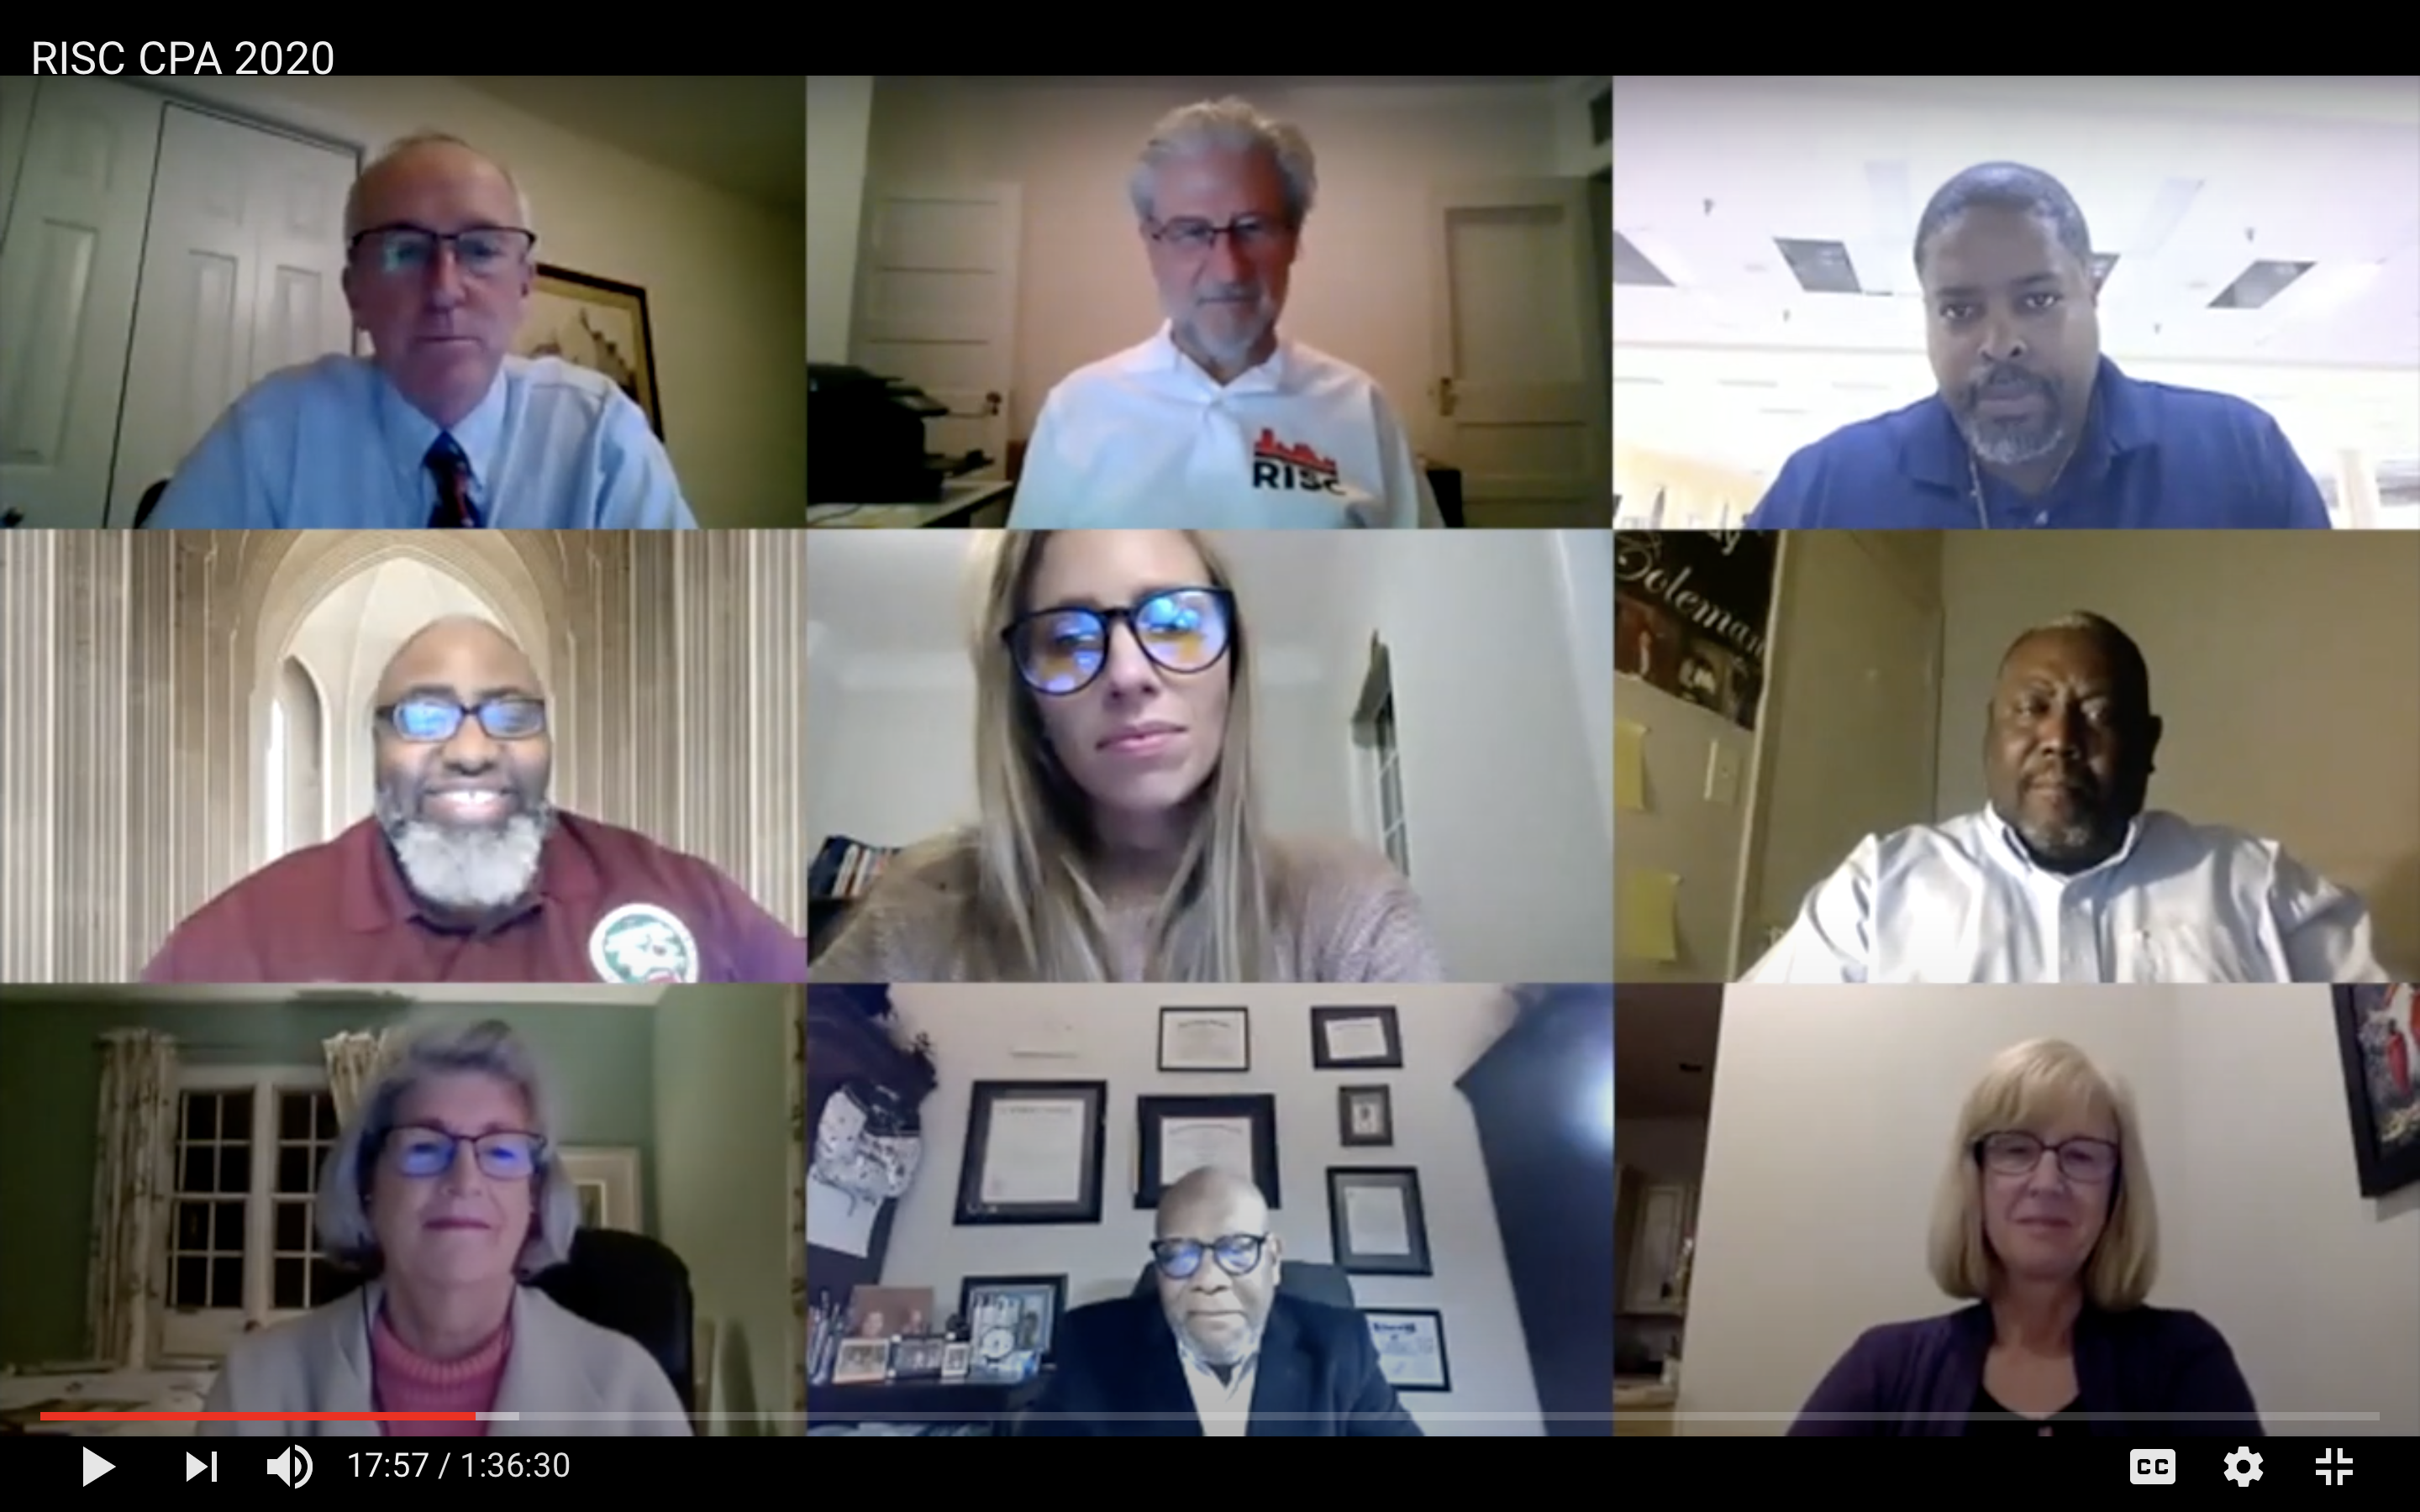 Screenshot of 9 people on a video conference call